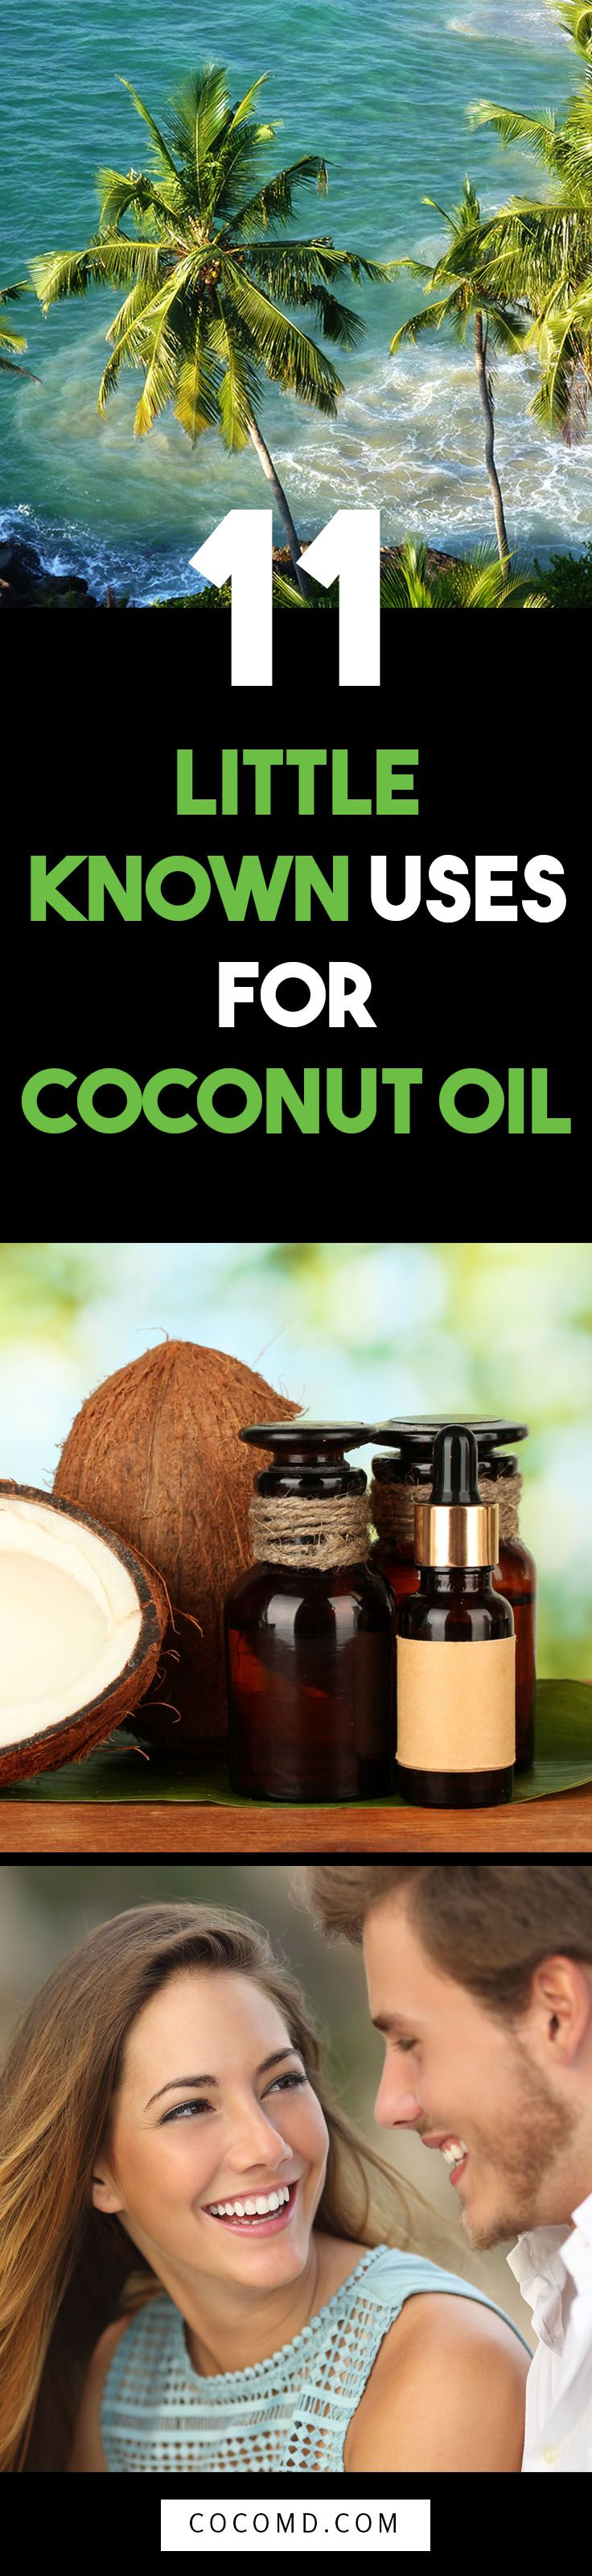 Coconut Oil Uses: 11 Little Known Uses for Coconut Oil | Coconut oil deserves every little praise it gets as its become the holy grail of natural products for your hair, skin, nails, teeth, pets, kids, health and weight loss! Use it as a makeup remover, moisturizer, shaving cream, in your cooking, as an energy booster, for your pets and more! Get creative ideas by COCOMD at http://blog.cocomd.com/11-little-known-coconut-oil-uses/